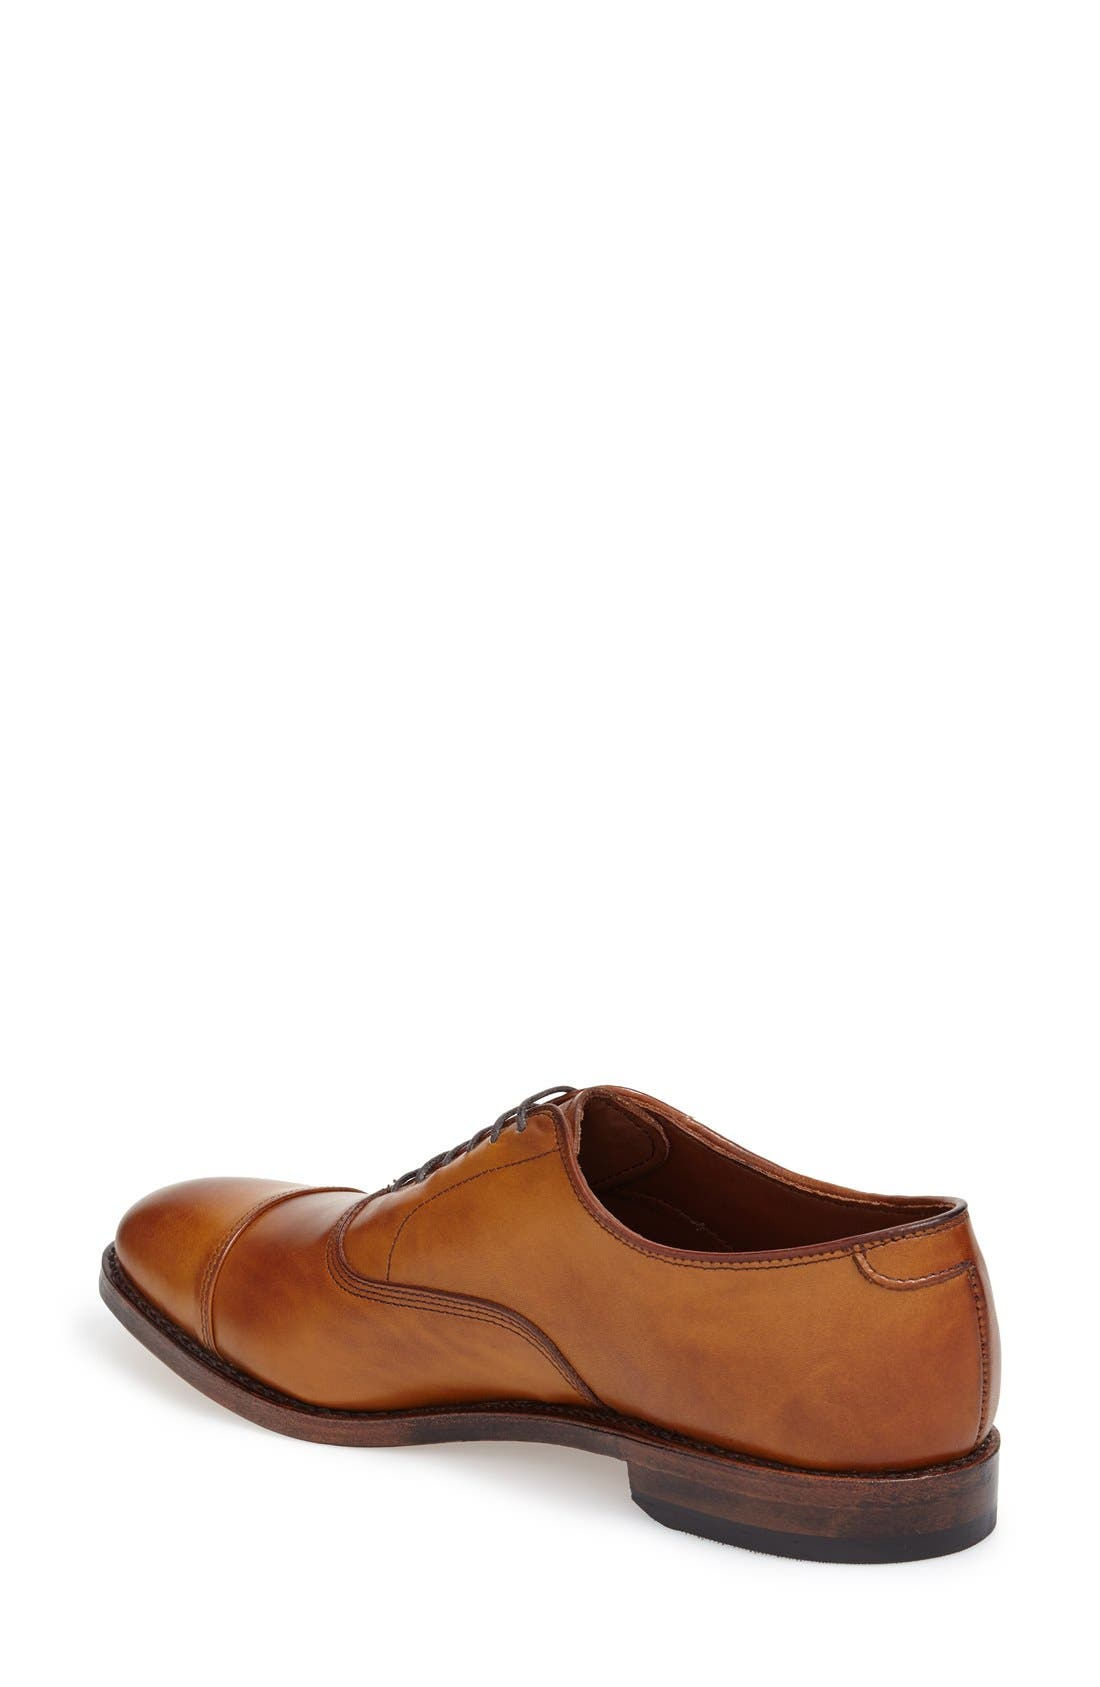 'Park Avenue' Cap Toe Oxford,                             Alternate thumbnail 3, color,                             WALNUT